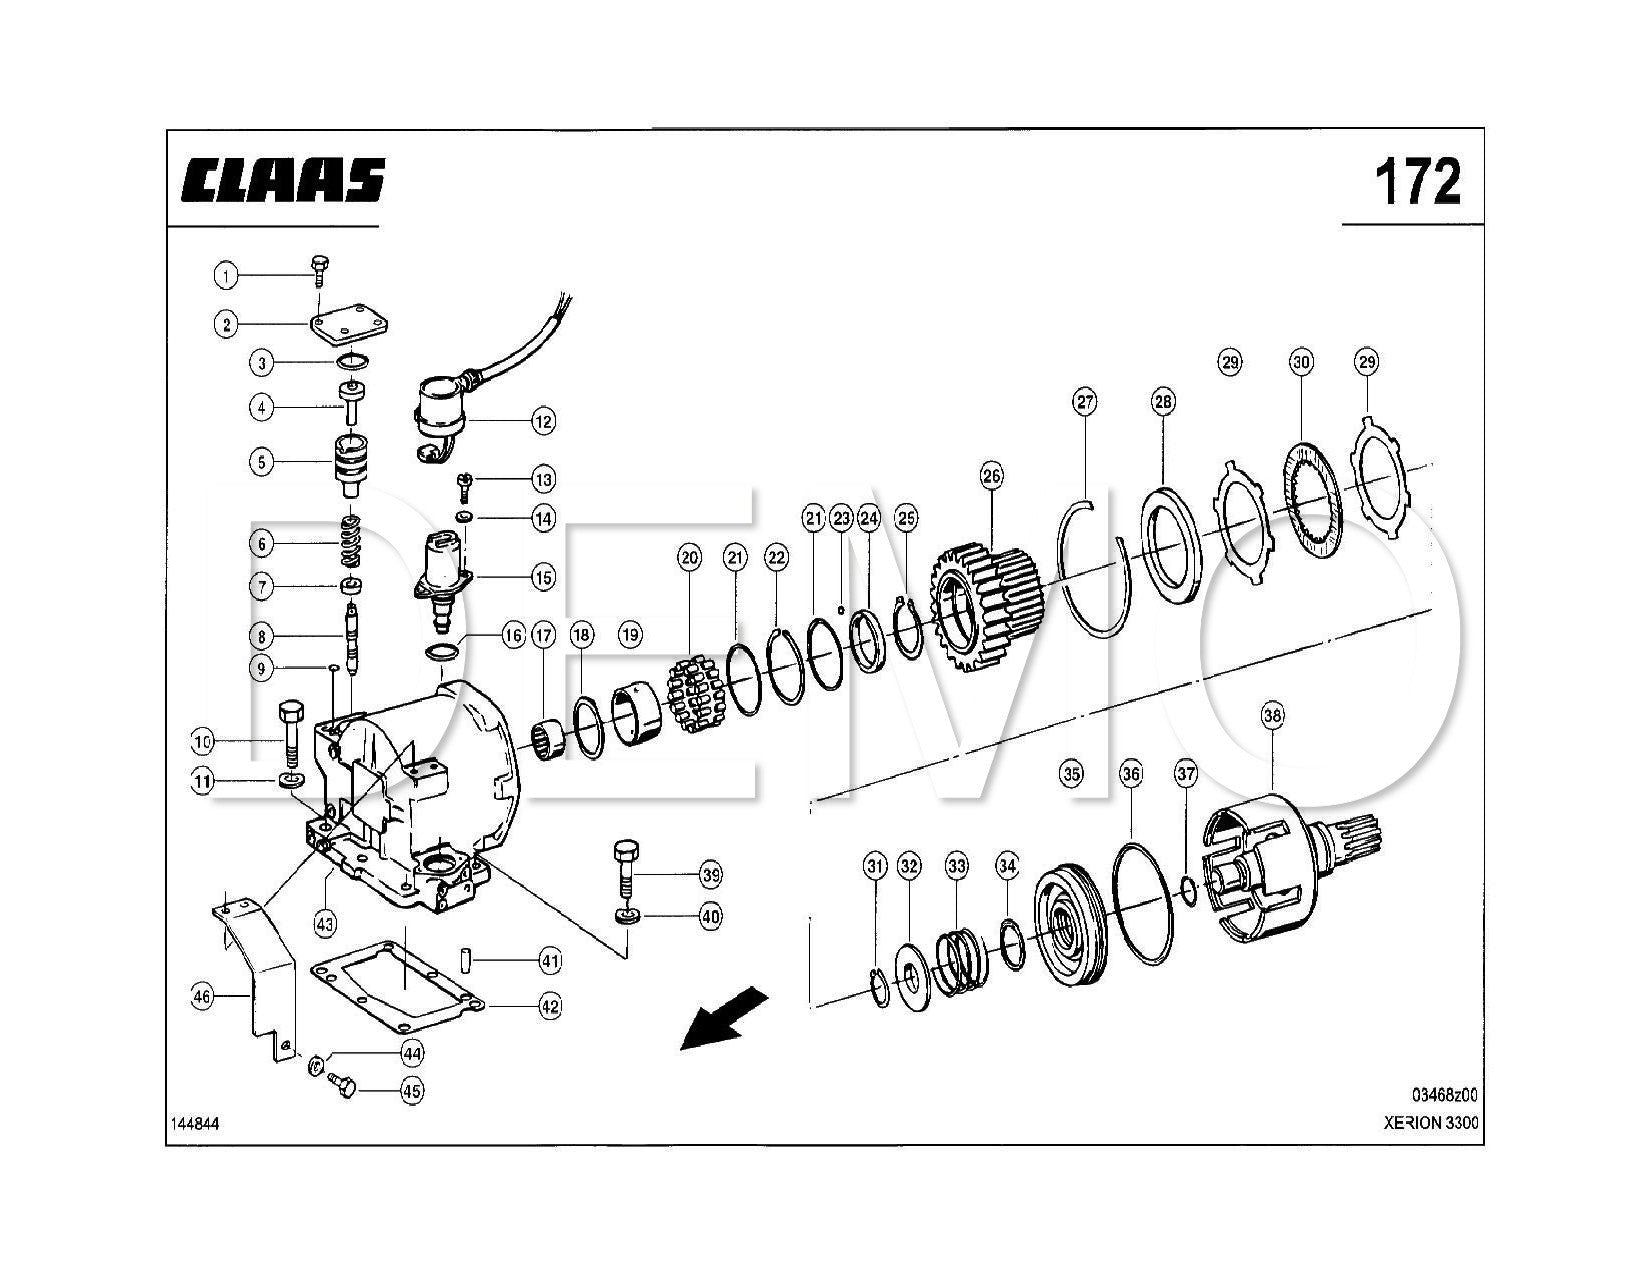 Claas Xerion 2500/3000 Parts Catalogue, Spares List Manual